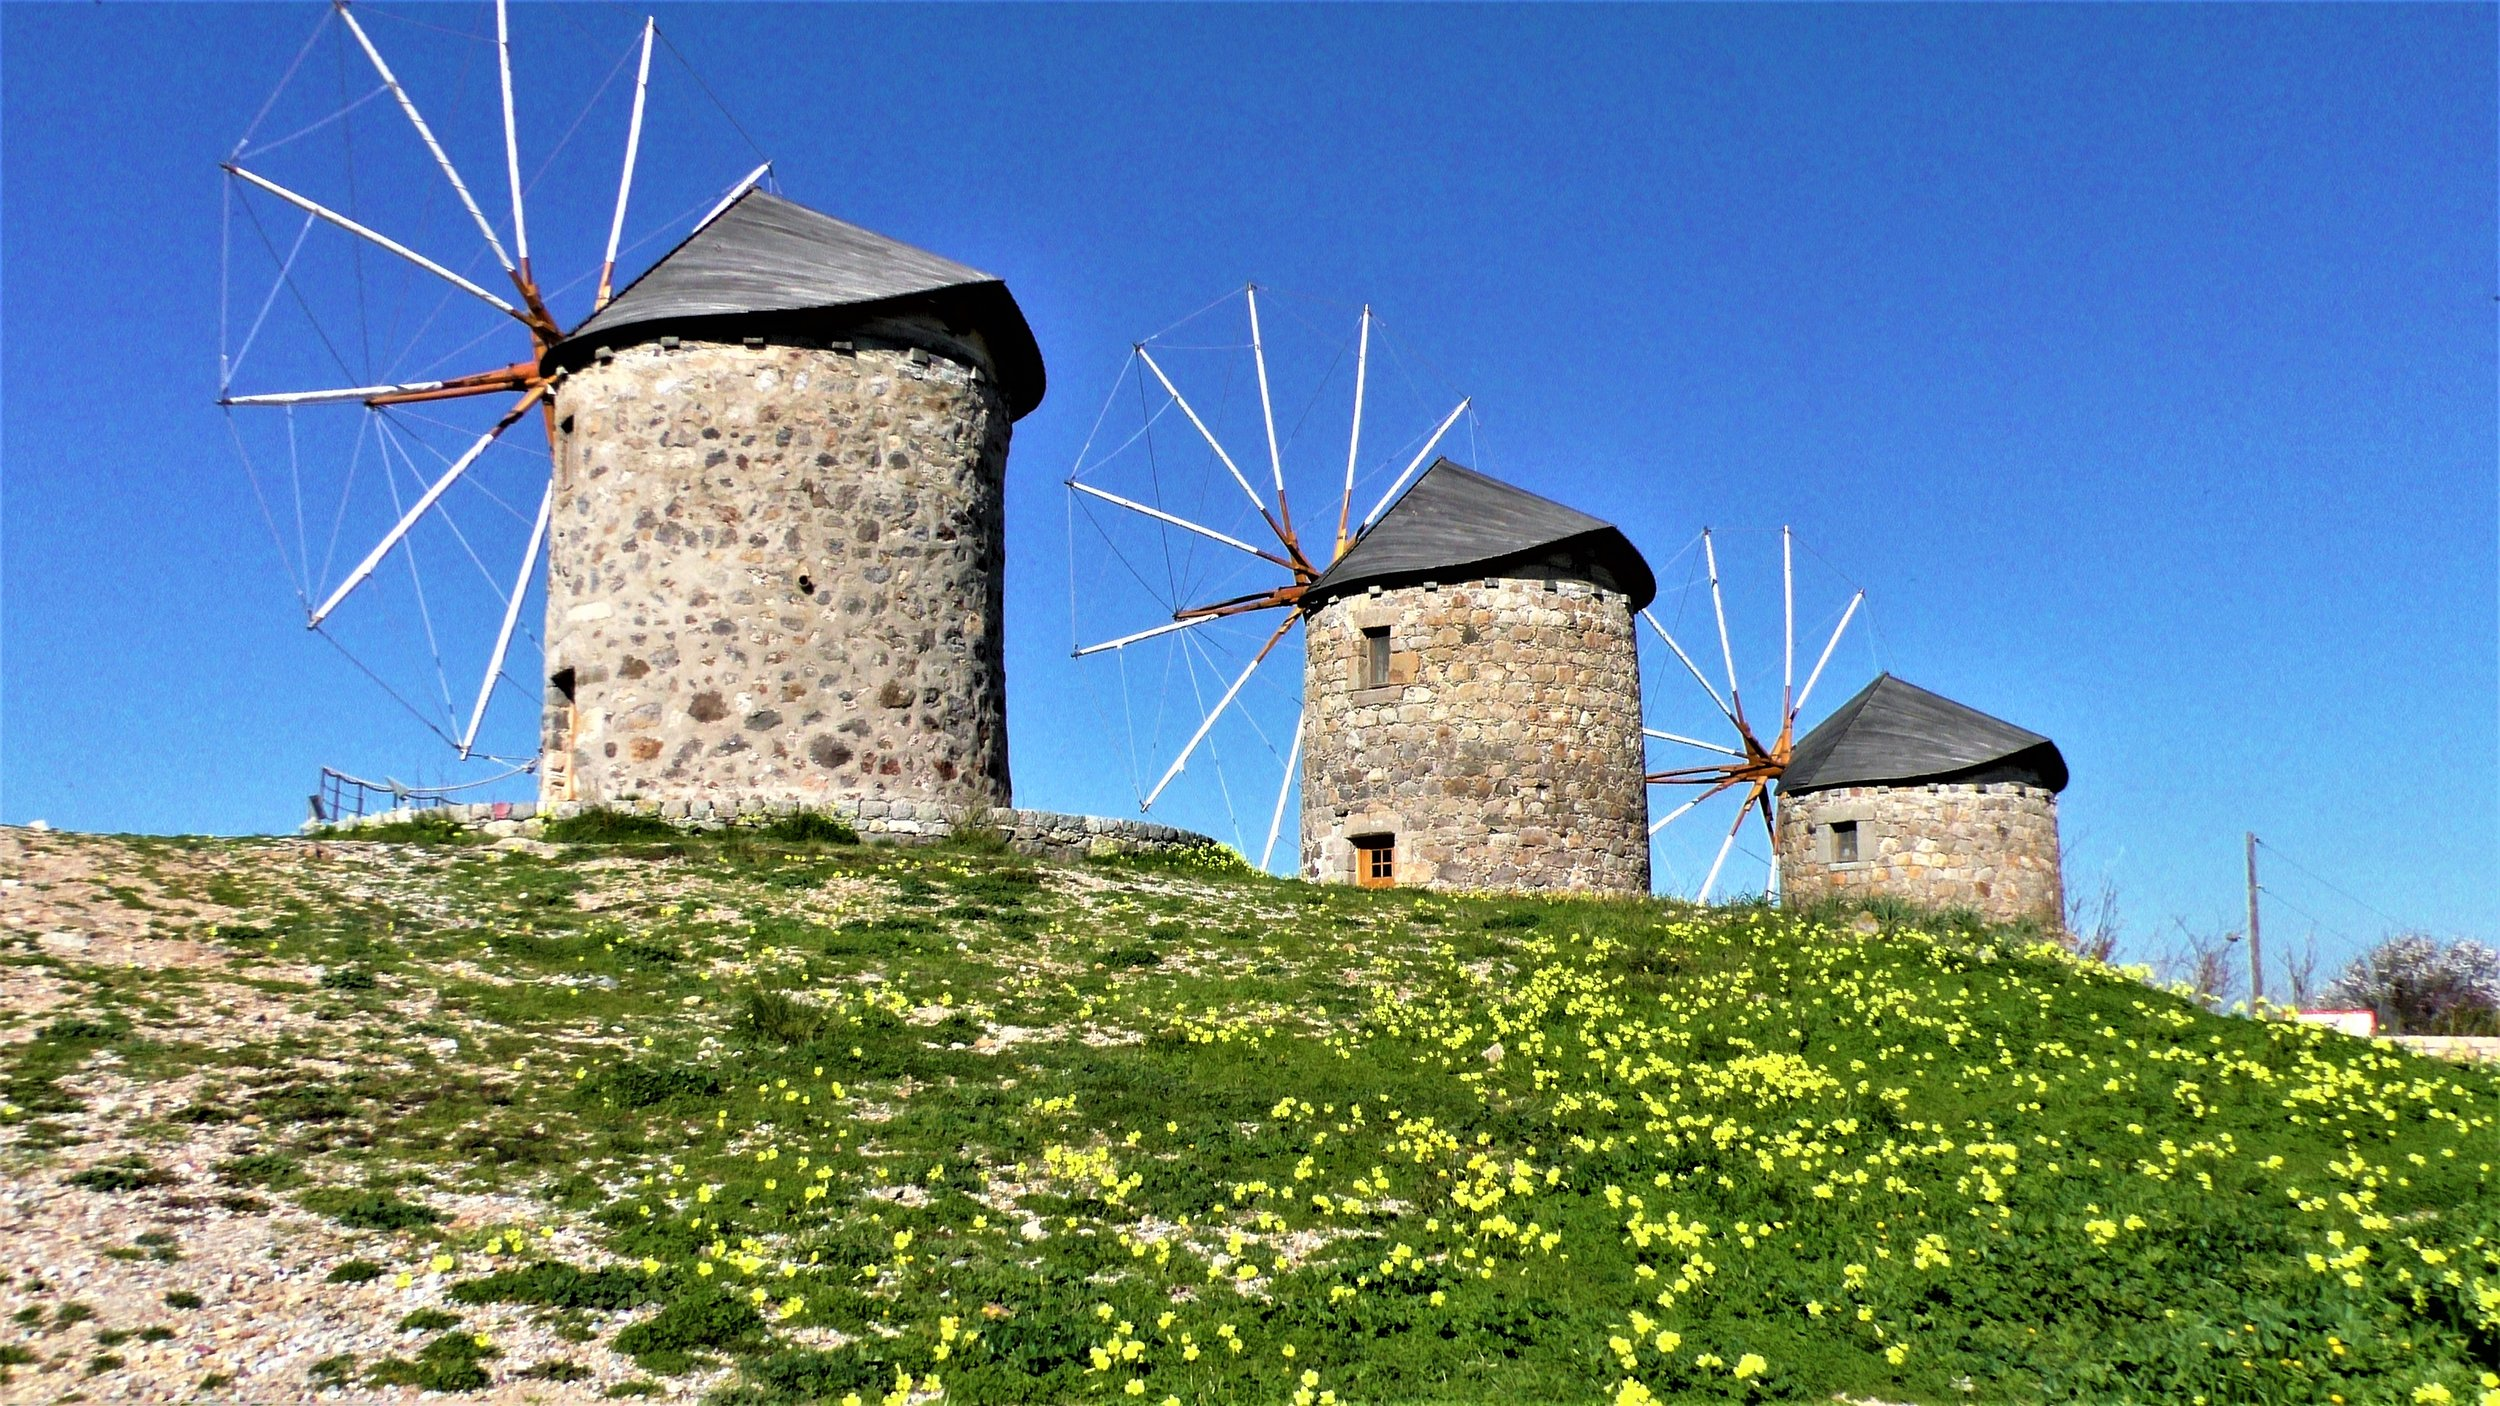 On Patmos, windmills rigged with sails. From the 16th century.